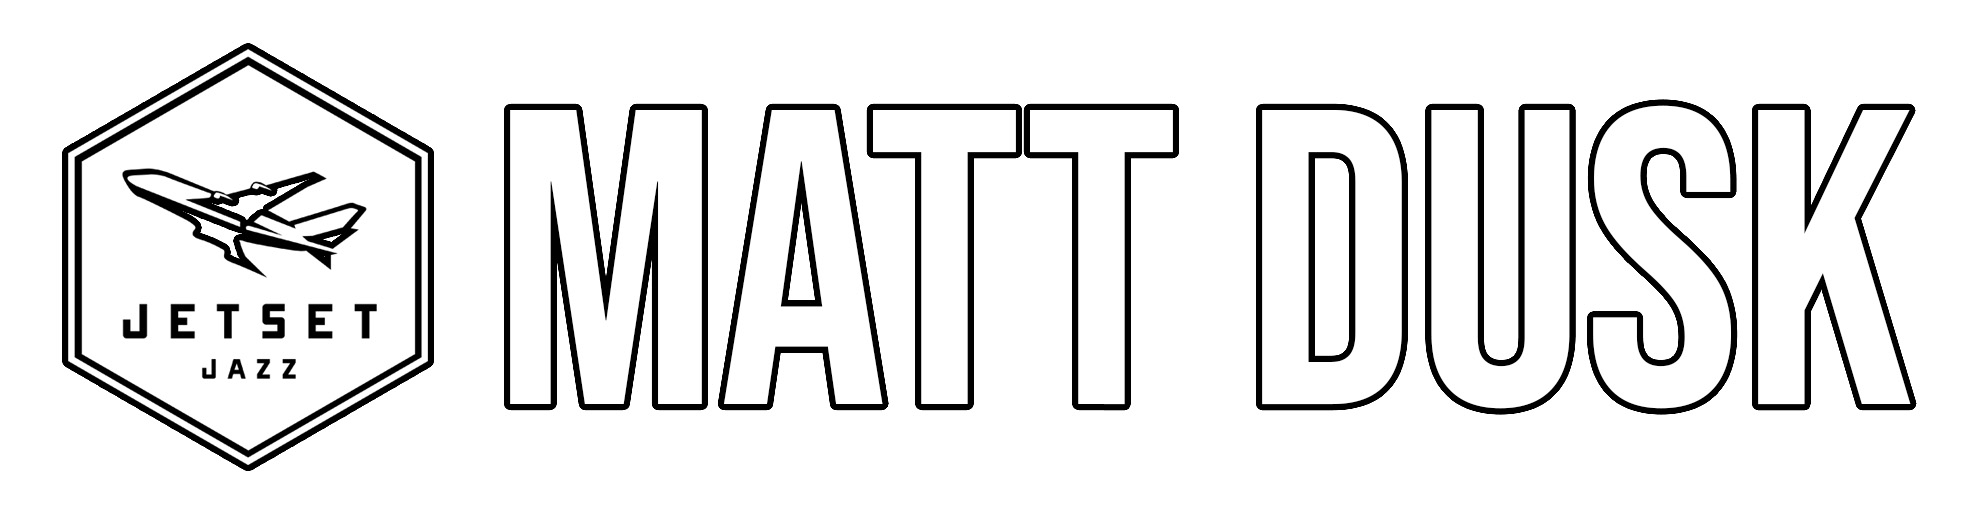 The Official Website of Jazz Singer Matt Dusk Logo